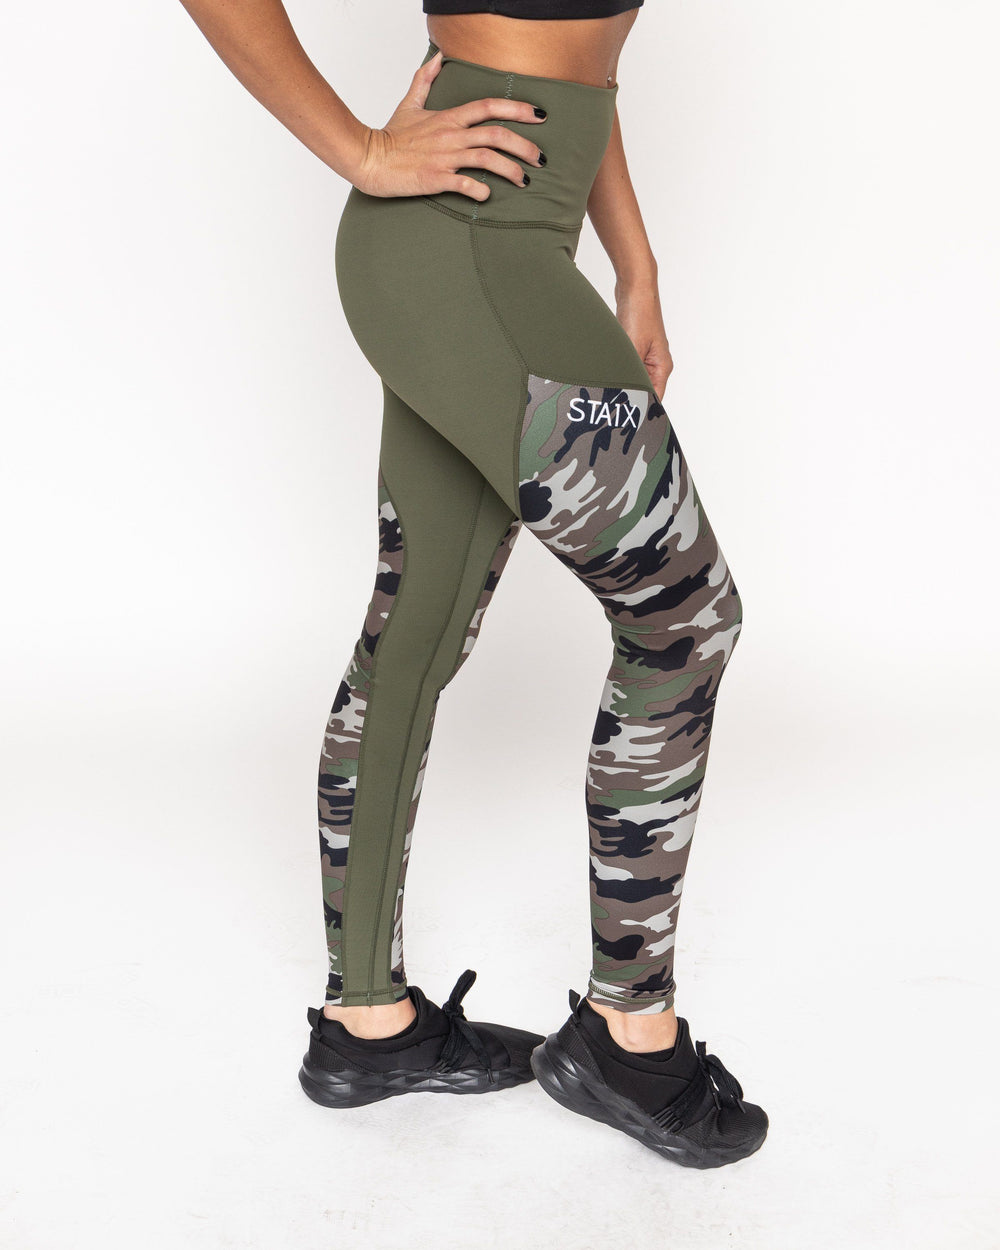 V-SCRUNCH LEGGINGS WOMEN'S LEGGINGS STAIX S GREEN CAMO